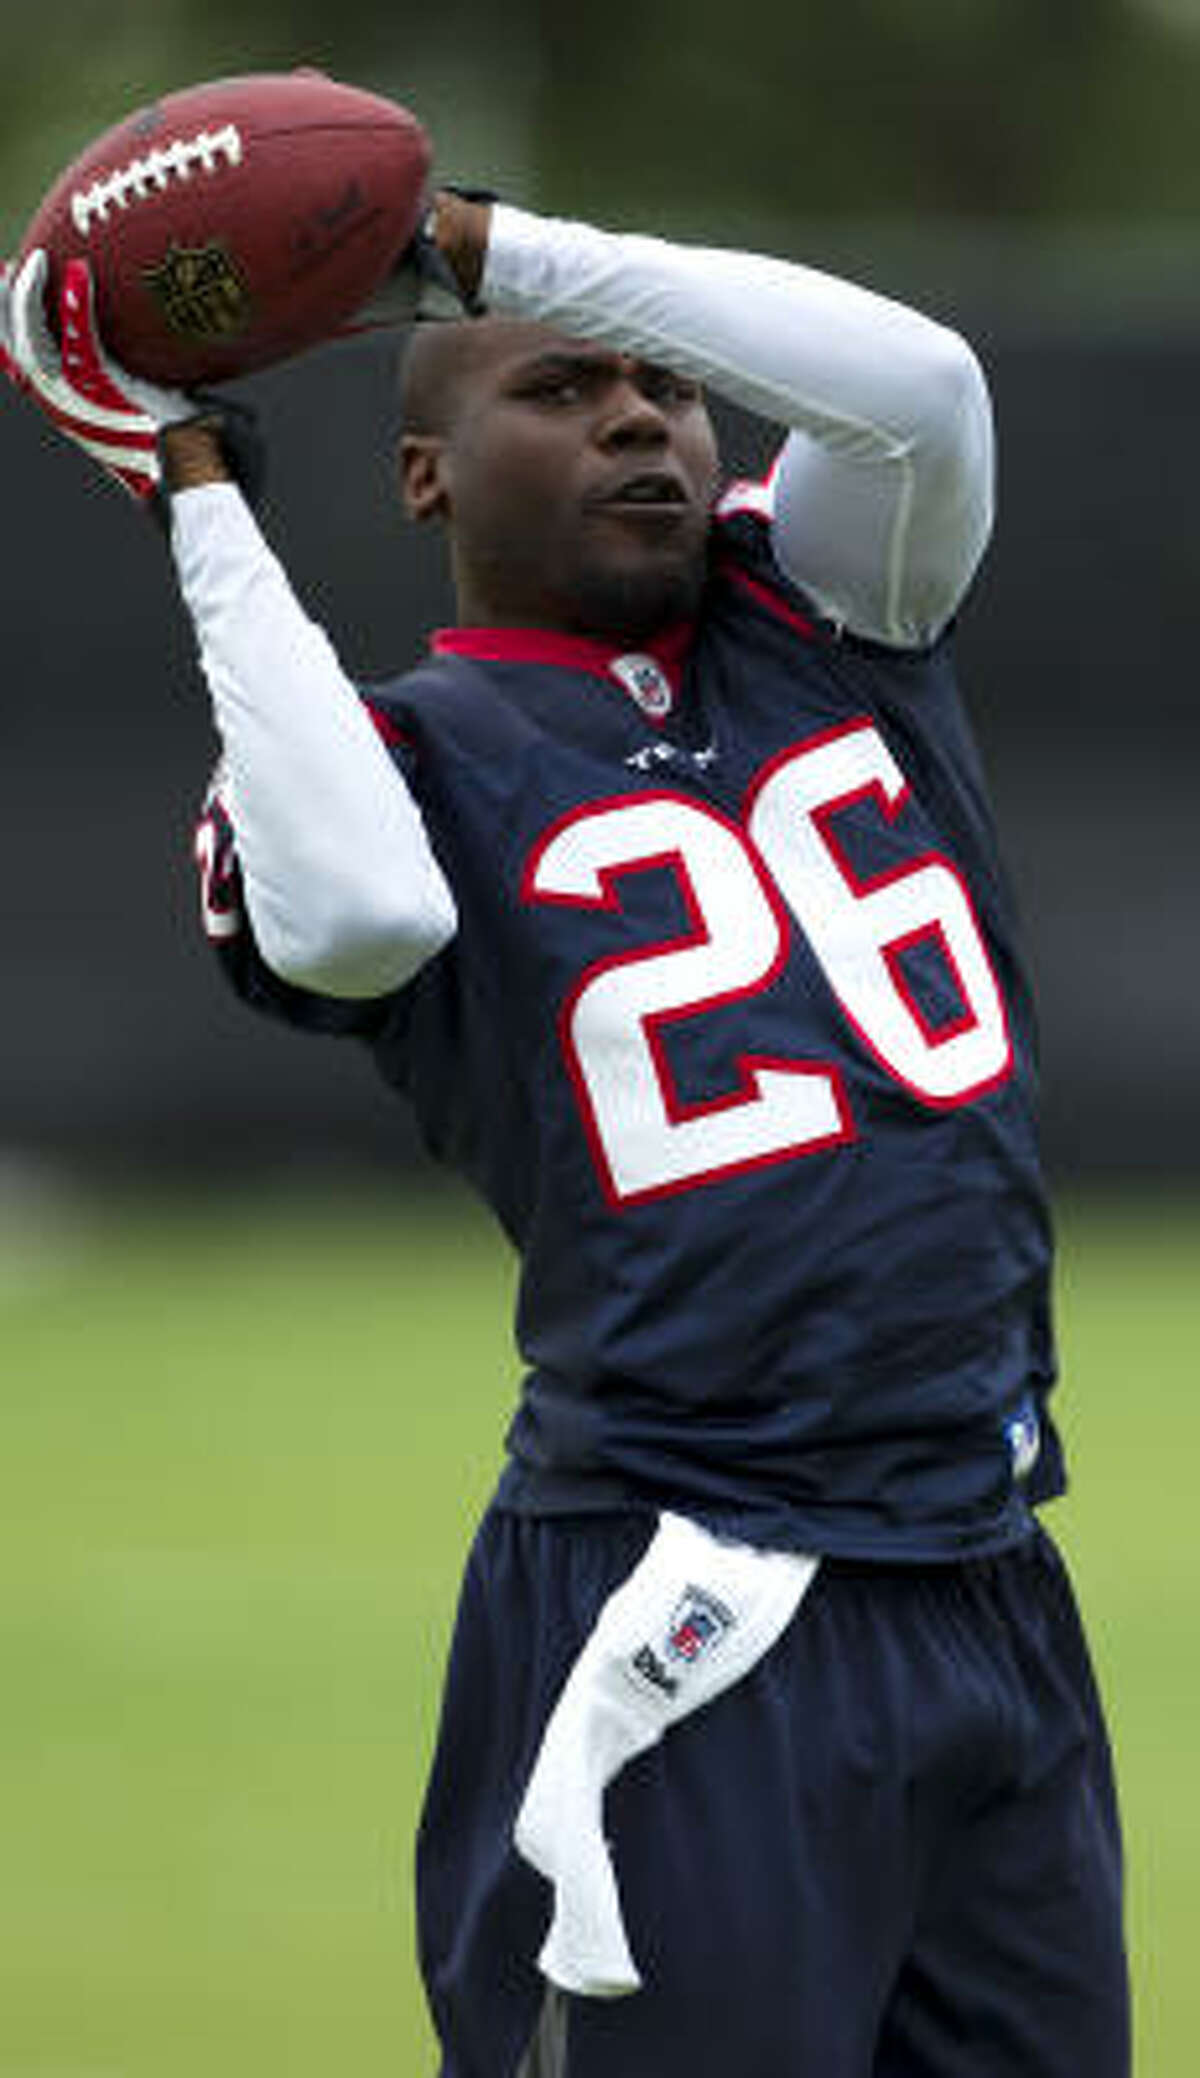 Texans safety Eugene Wilson, an eight-year veteran, won two Super Bowl rings with New England, including one in Reliant Stadium in 2004.